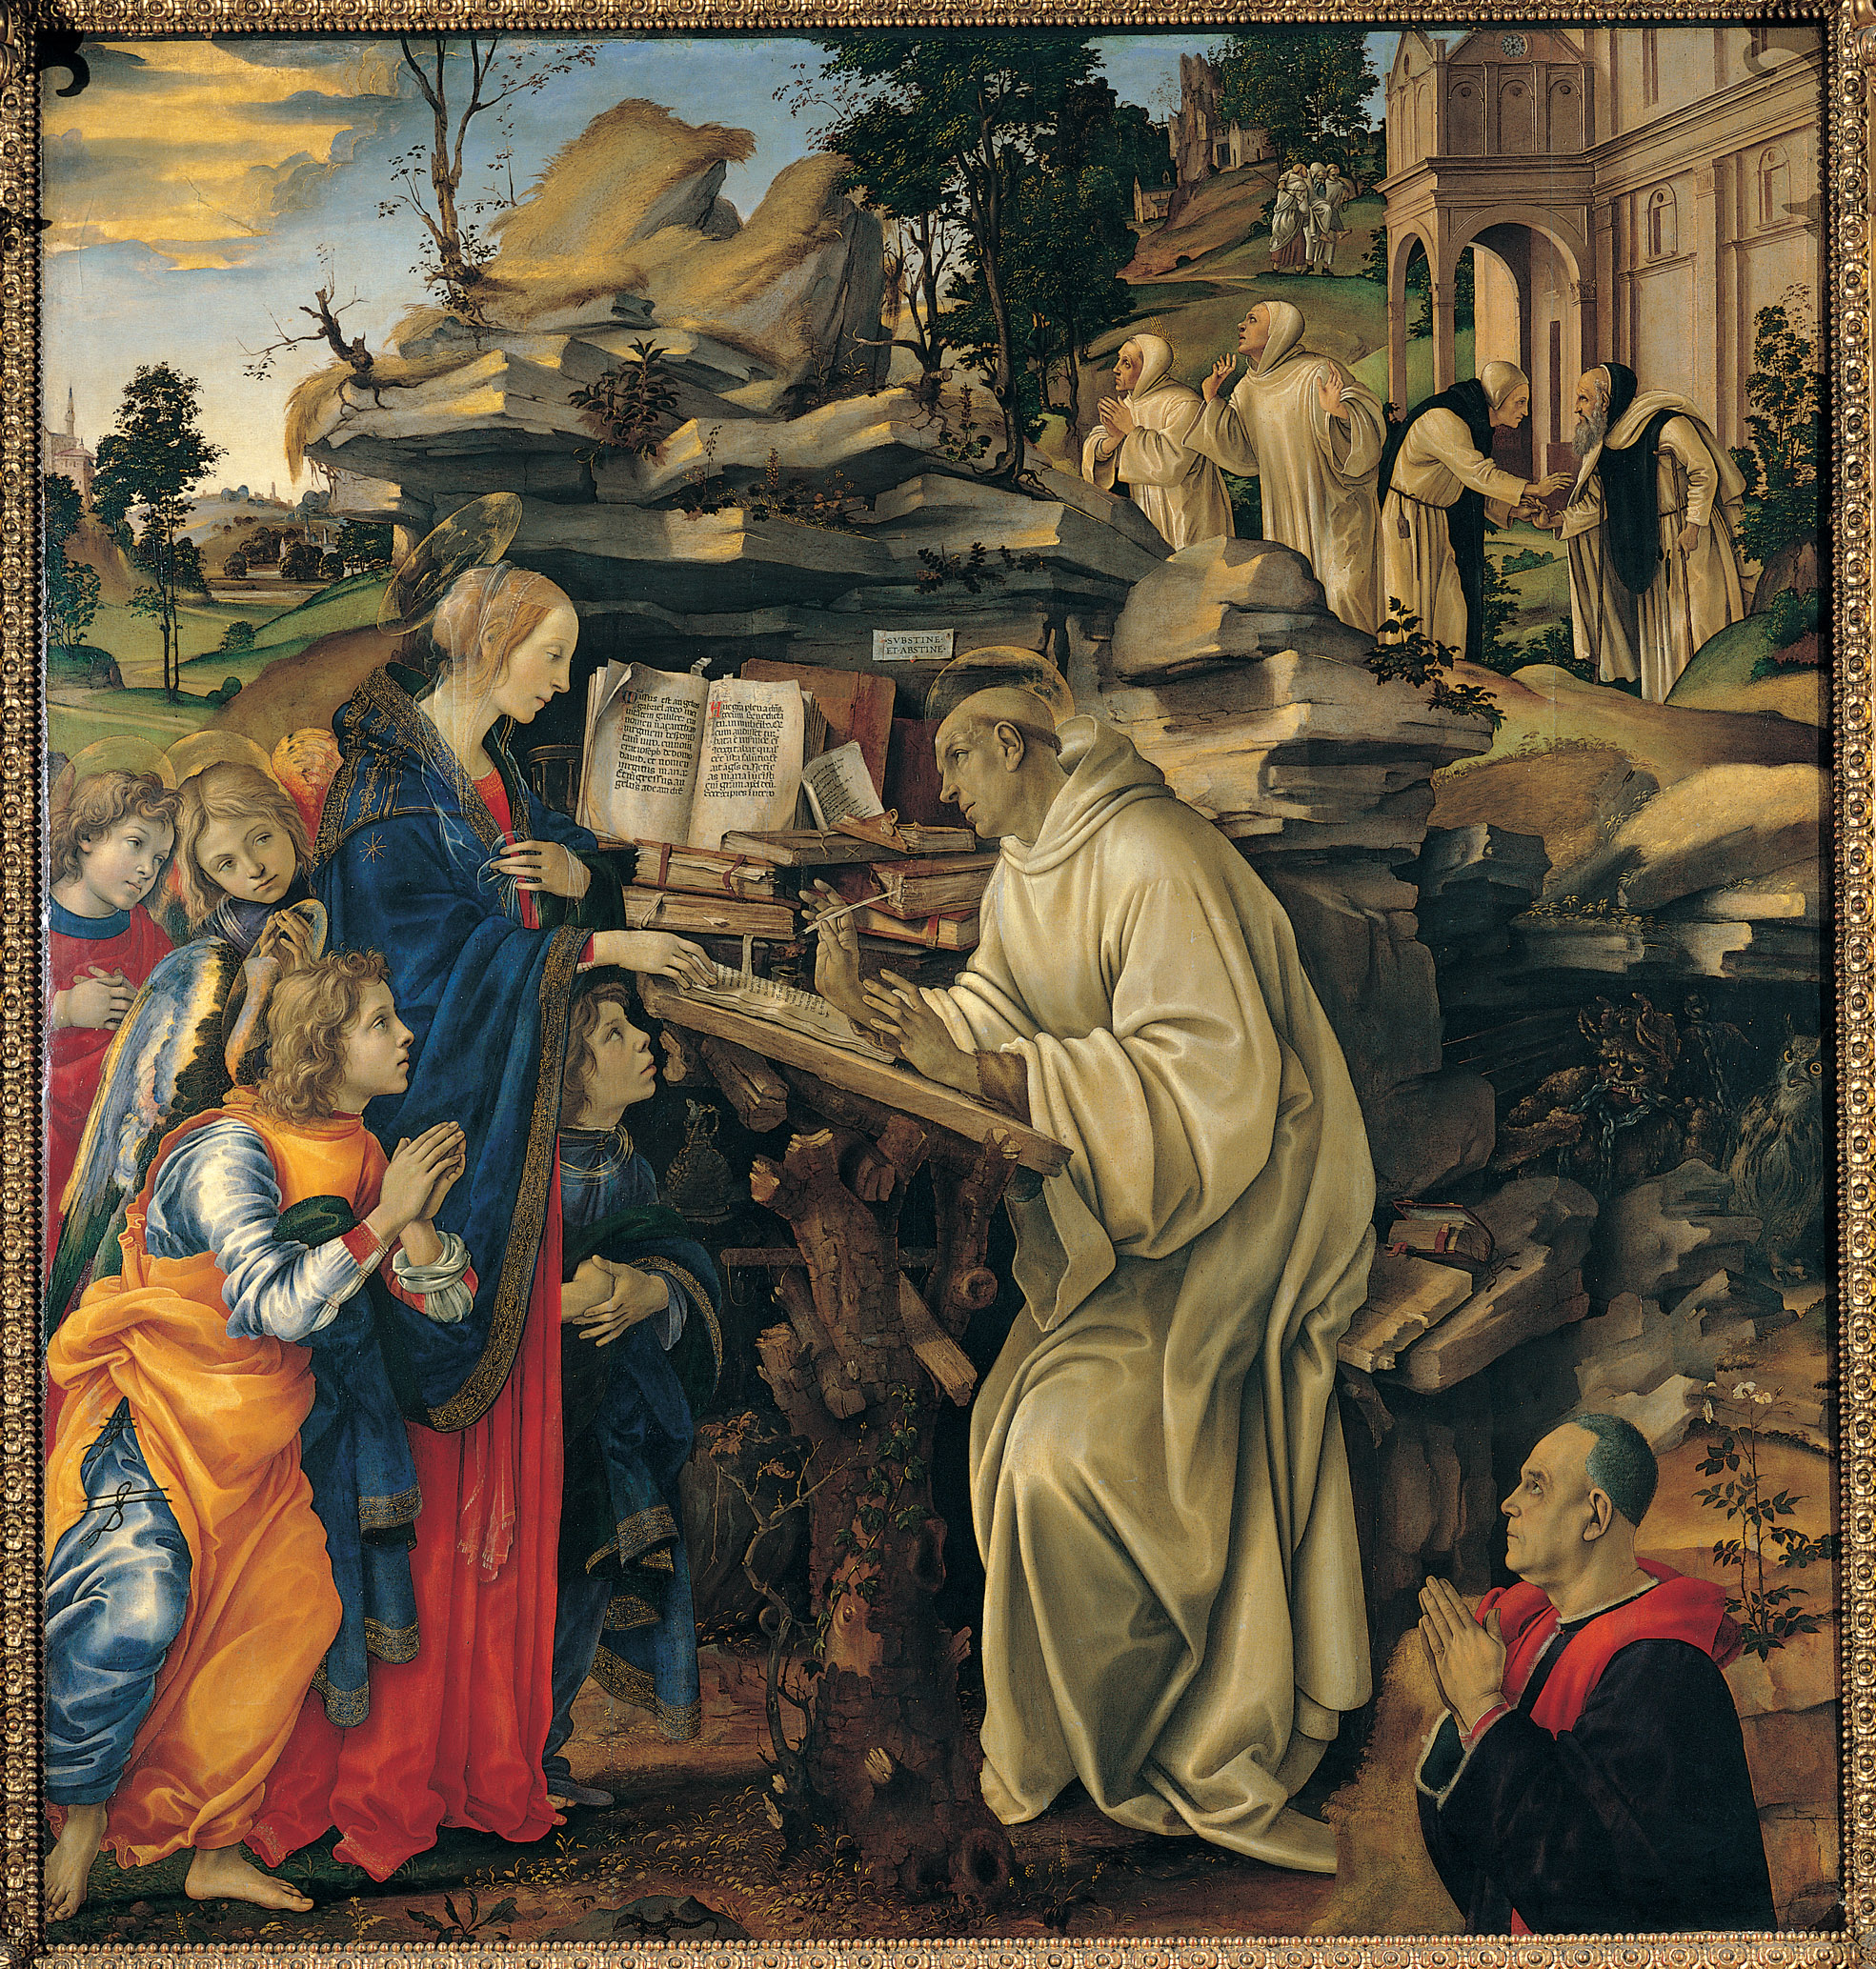 http://upload.wikimedia.org/wikipedia/commons/7/7e/Bernardo_claraval_filippino_lippi.jpg